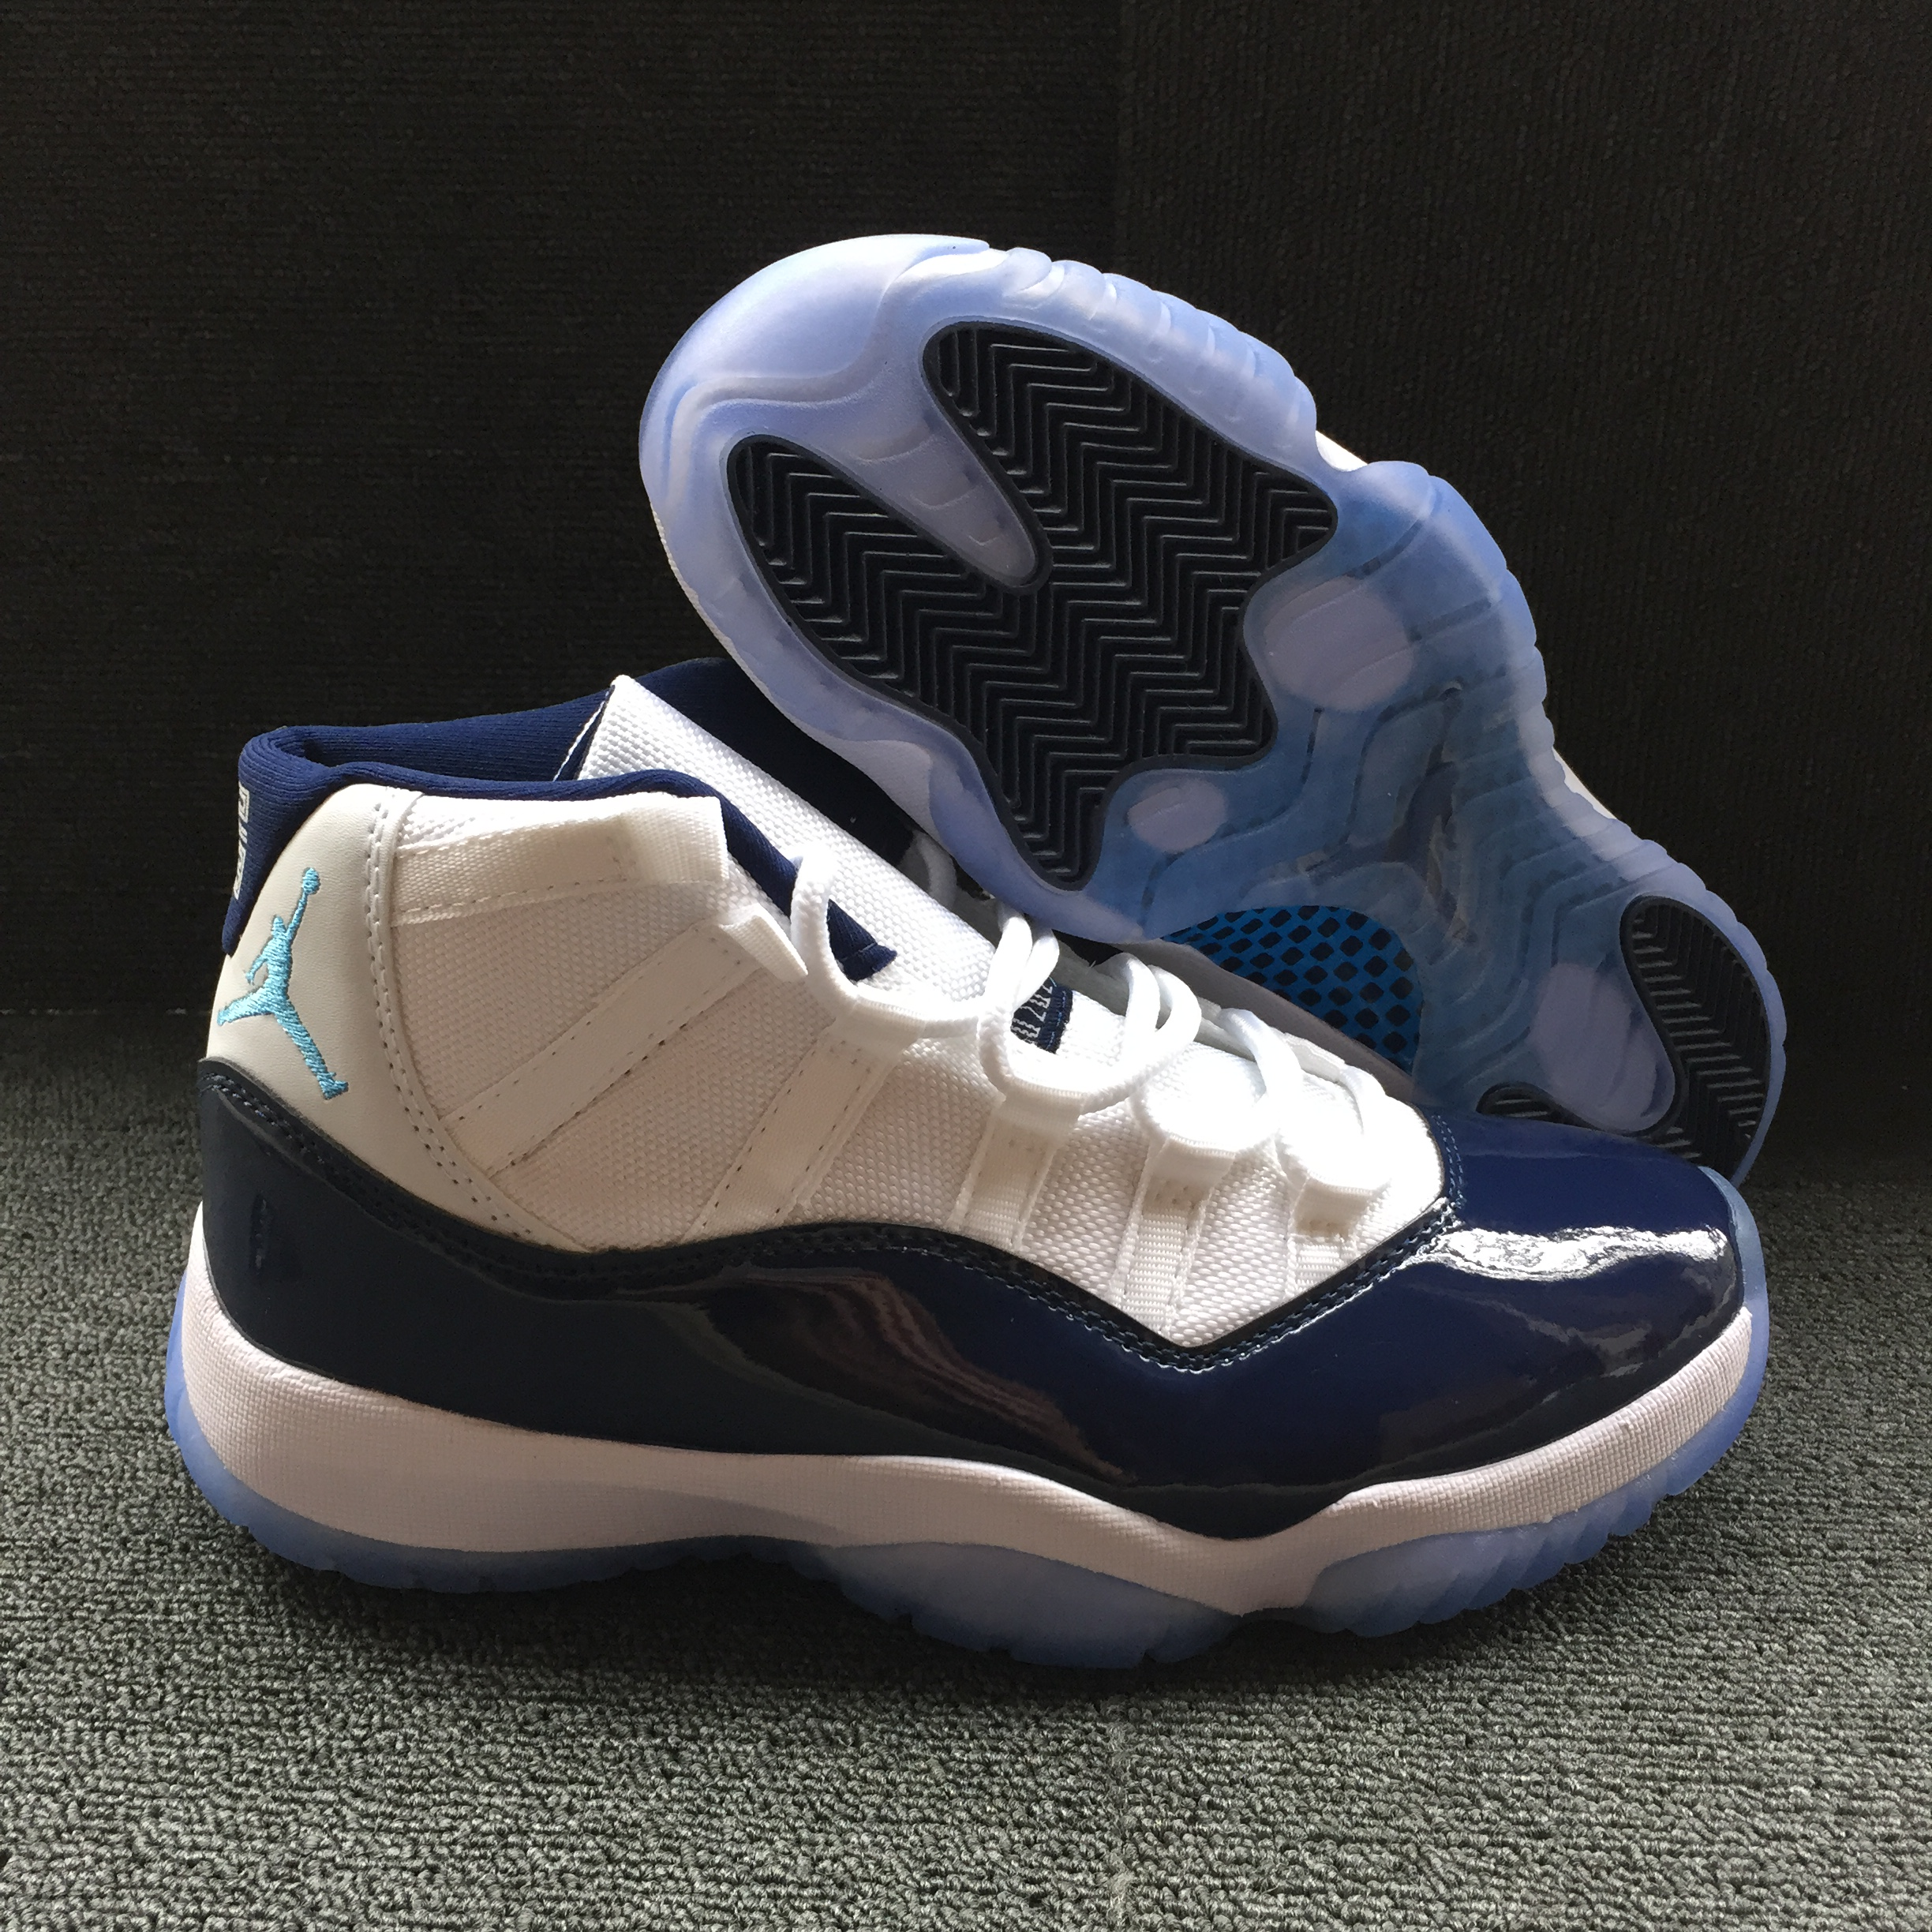 New Air Jordan 11 Retro White Blue Jumpman Shoes